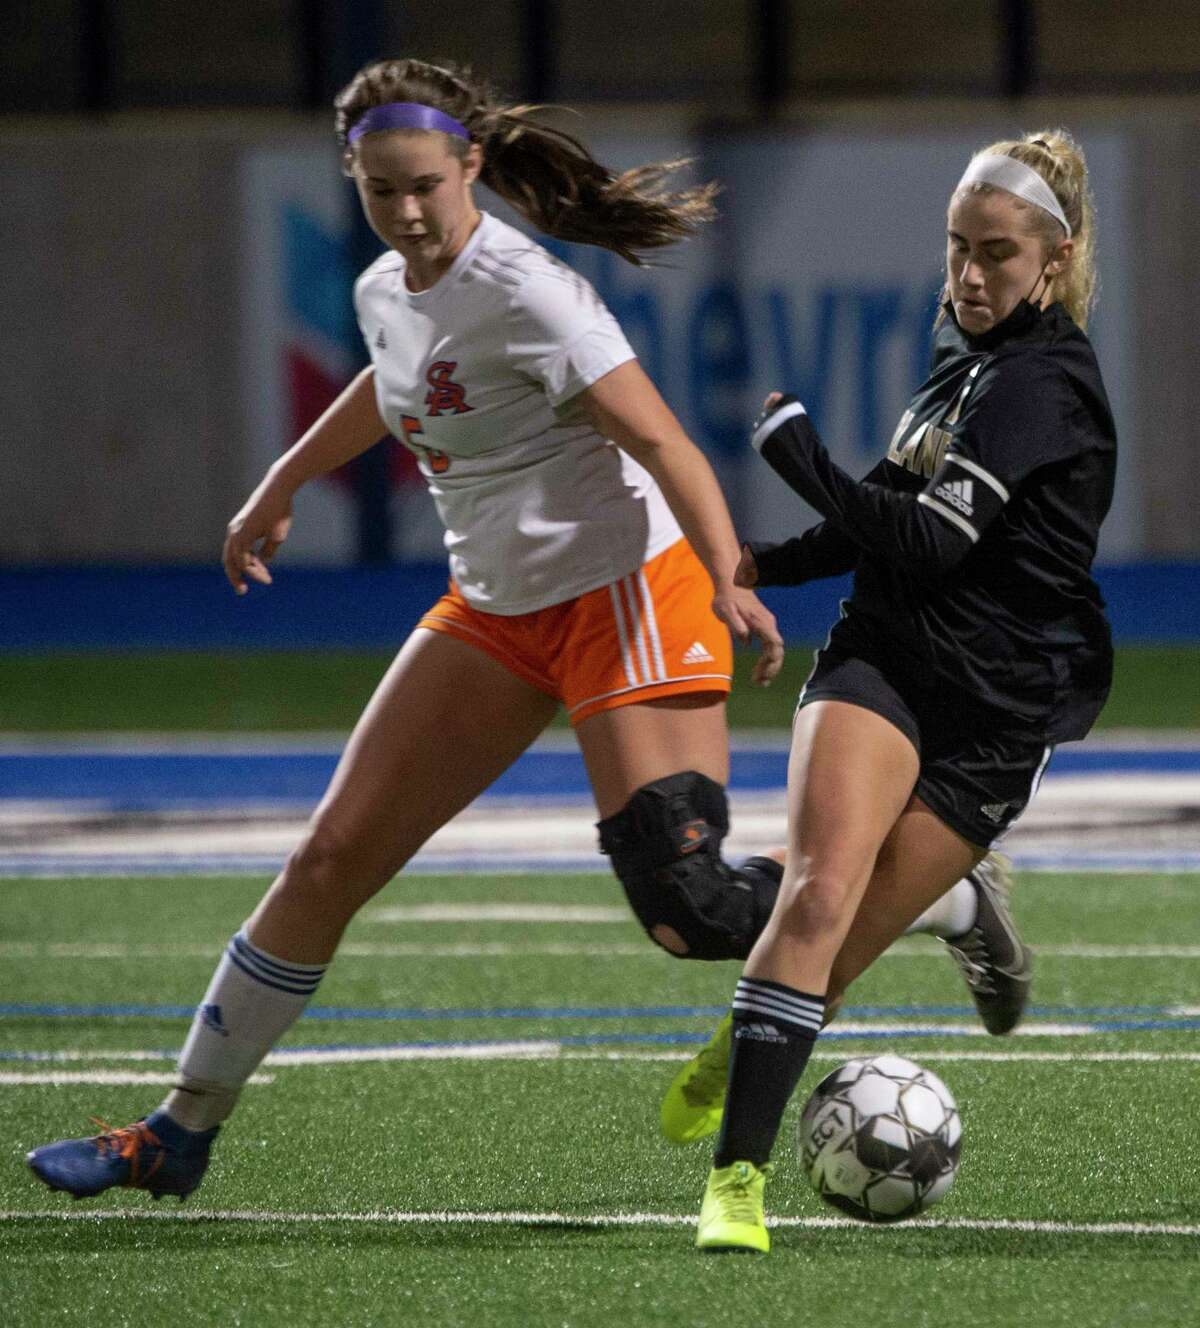 Midland High's Kinsey Hill cuts back to get away from San Angelo Central's Alexis Templin 02/02/2021 at Grande Communications Stadium. Tim Fischer/Reporter-Telegram